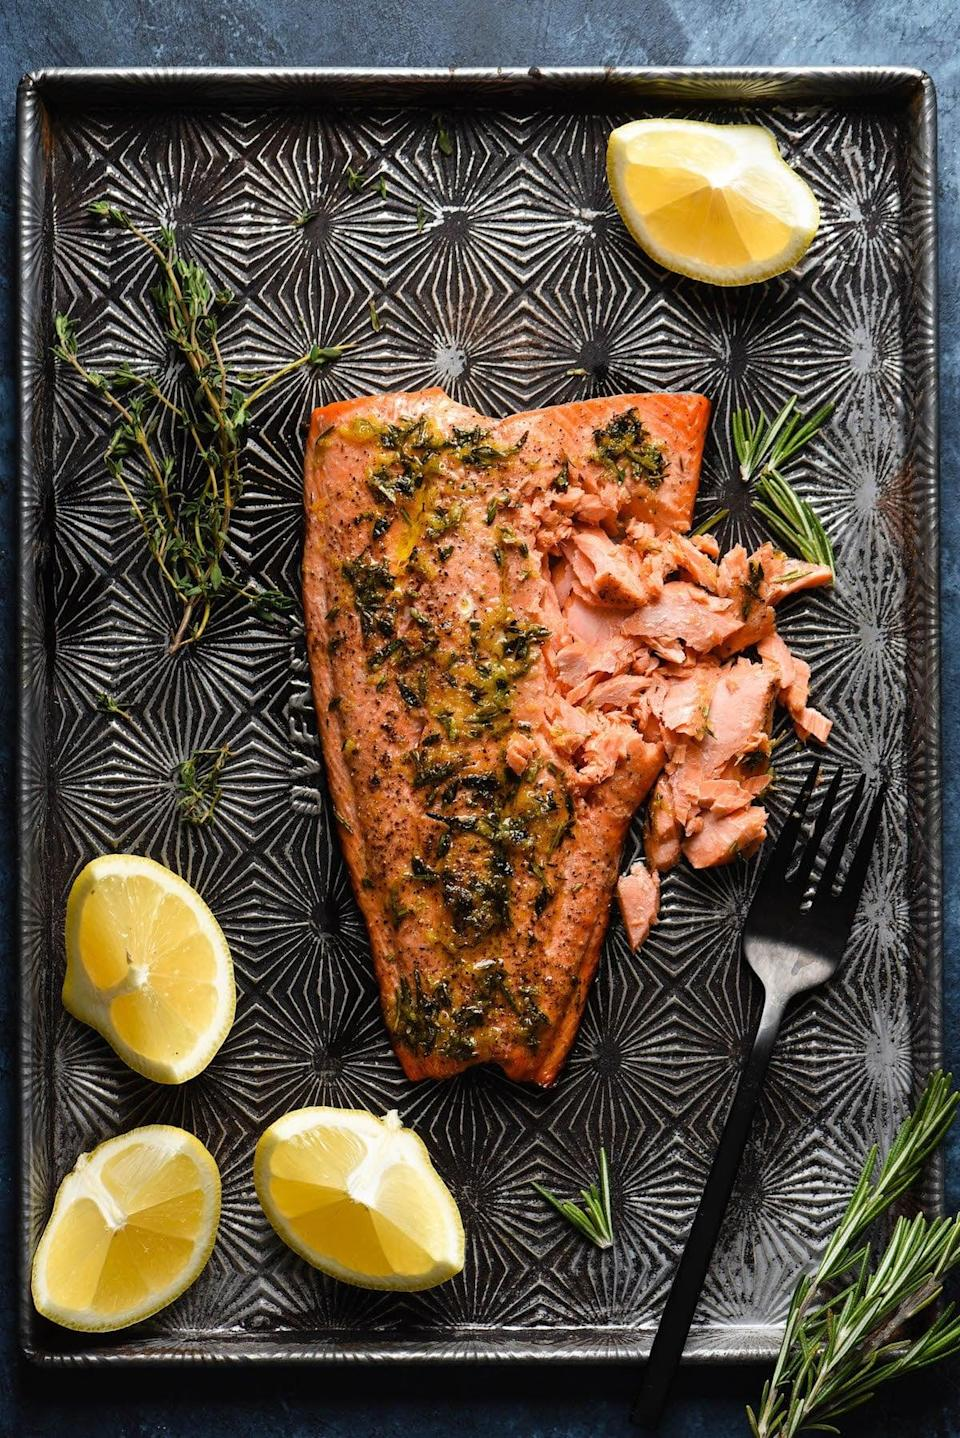 "<p>The folks of New Jersey are craving seaside salmon, and this recipe delivers omega-3s and seriously rich flavor. With a lemon herb zest, this salmon is worthy of making your mouth water.</p> <p><strong>Get the recipe</strong>: <a href=""https://foxeslovelemons.com/sockeye-salmon-recipe/"" class=""link rapid-noclick-resp"" rel=""nofollow noopener"" target=""_blank"" data-ylk=""slk:sockeye salmon"">sockeye salmon</a></p>"